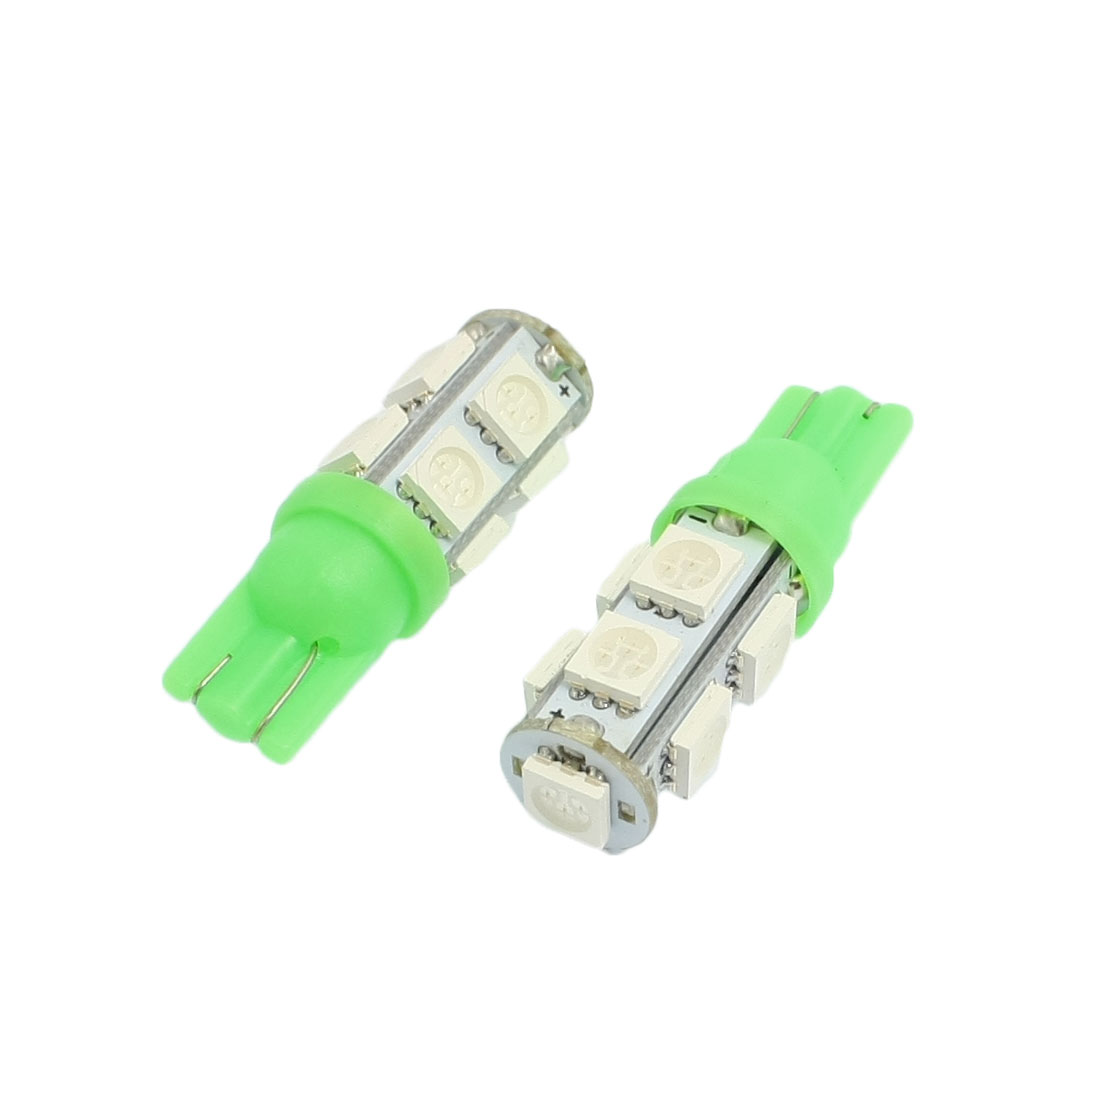 2 Pcs T10 9SMD 5050 SMD Bulbs Green 194 168 W5W LED Wedge Car Light